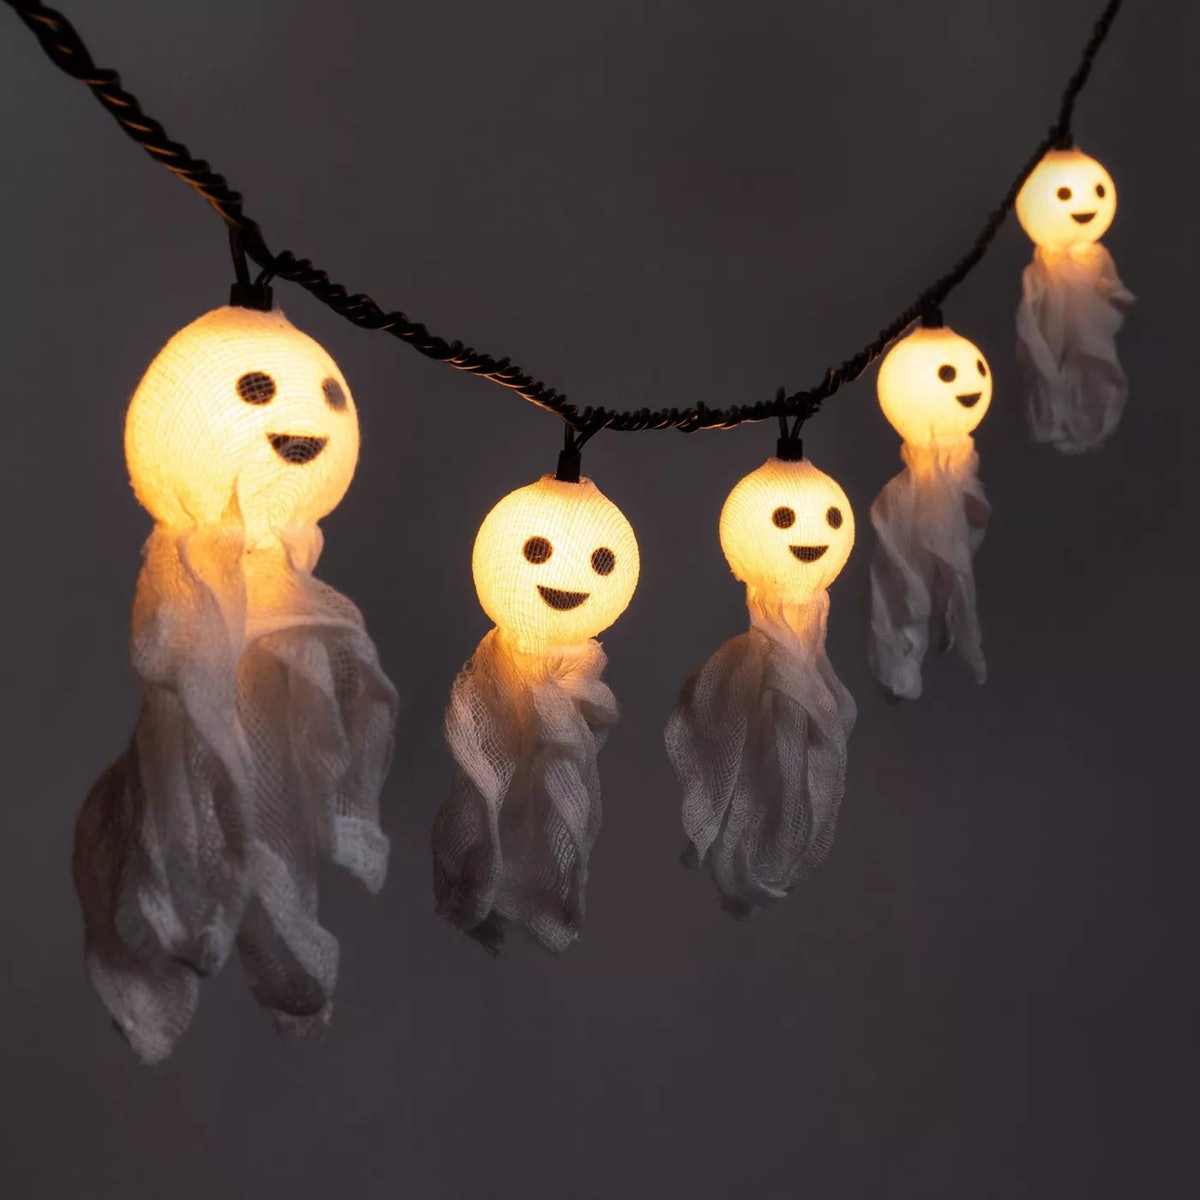 10-Count Incandescent Fabric Ghost Halloween String Lights - Hyde & EEK! Boutique